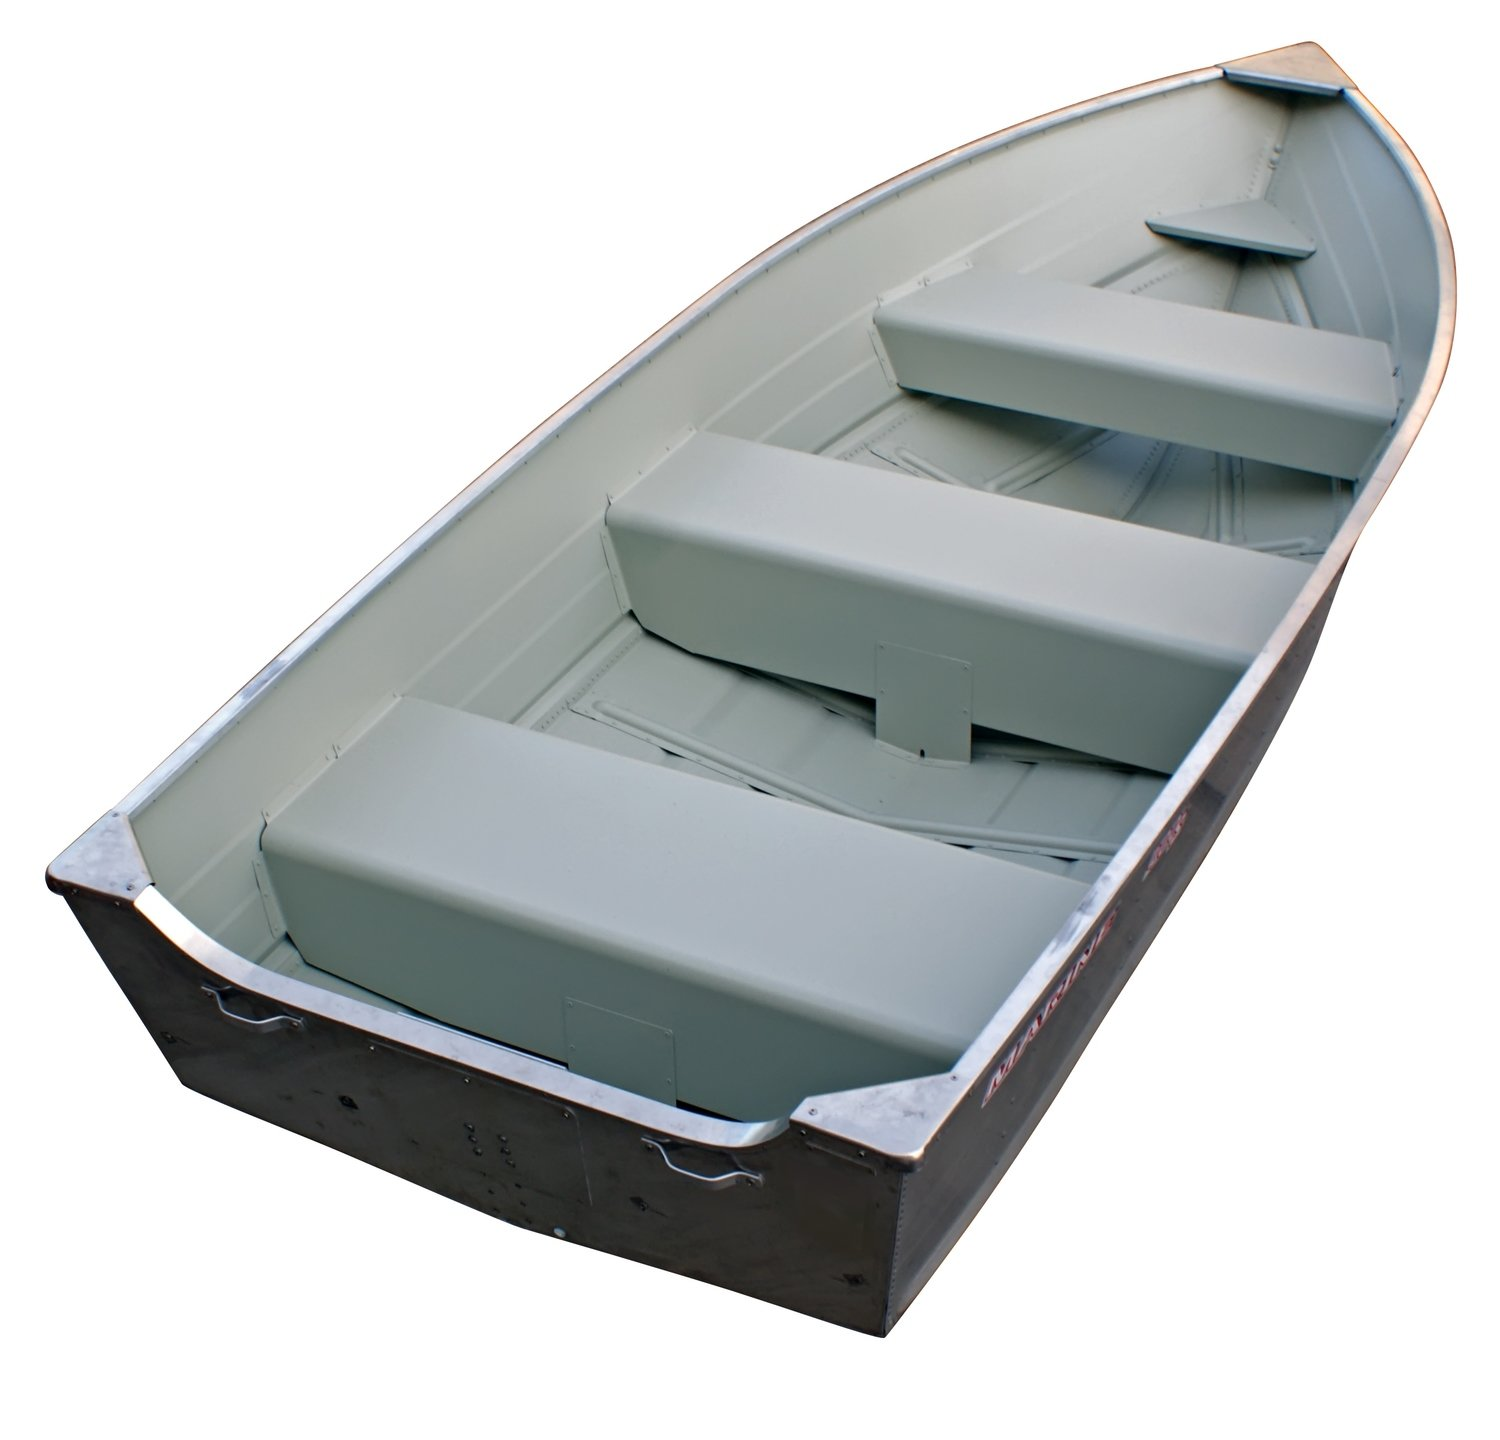 Marine Aluminium 450 / 500 S: V Hull Ally Boat ~ Dinghy ~ Fishing ~ Sea CLICK FOR FURTHER PRICING